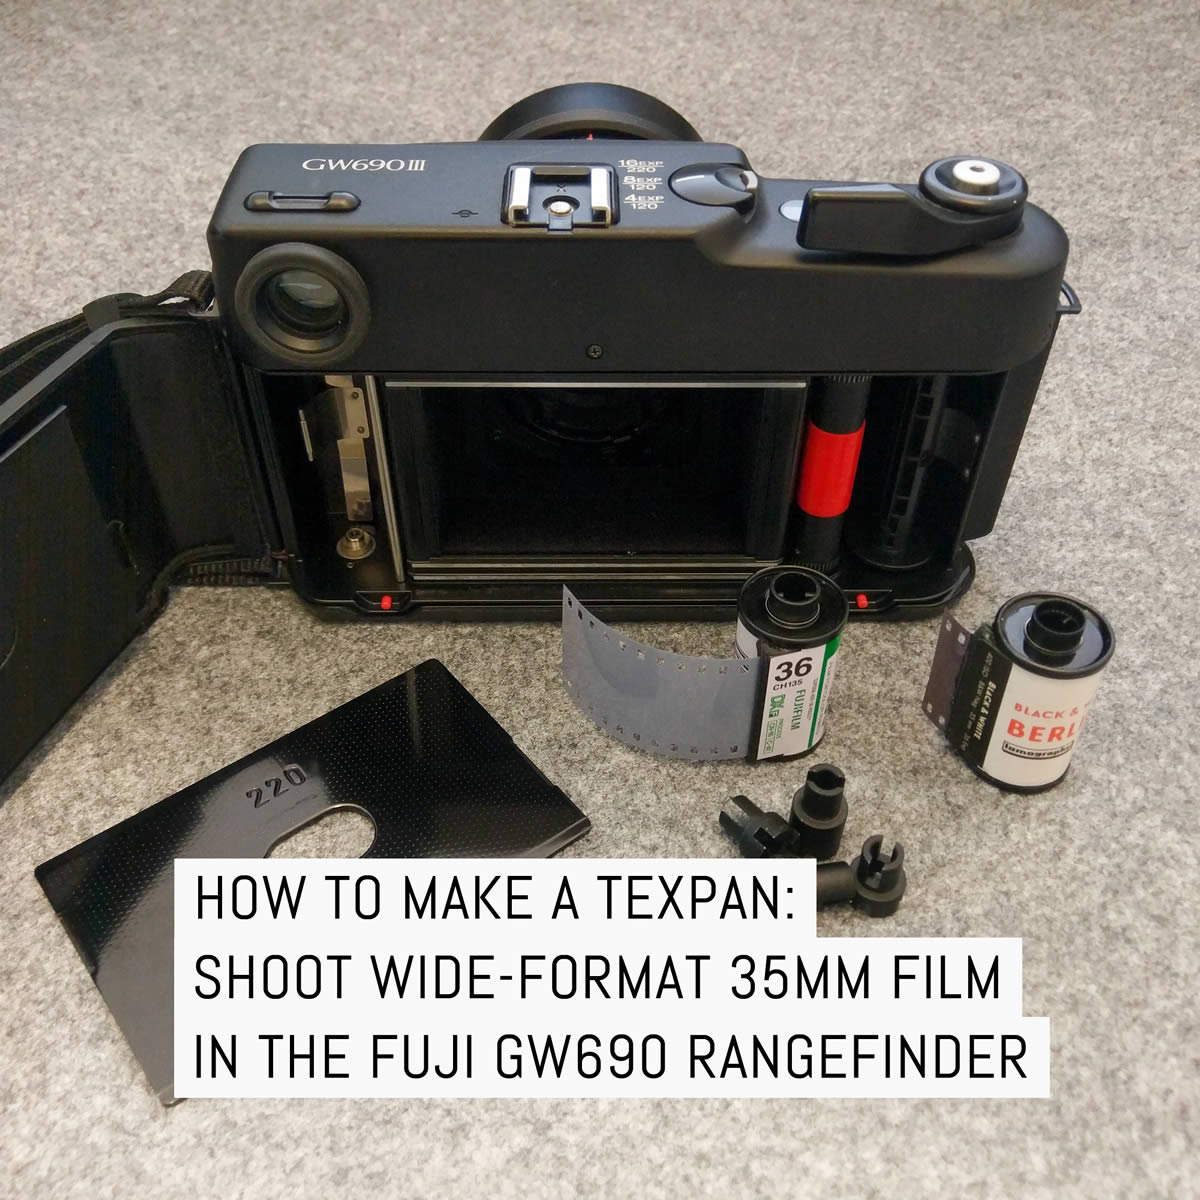 How to make a TEXPan: shoot wide-format 35mm film in the